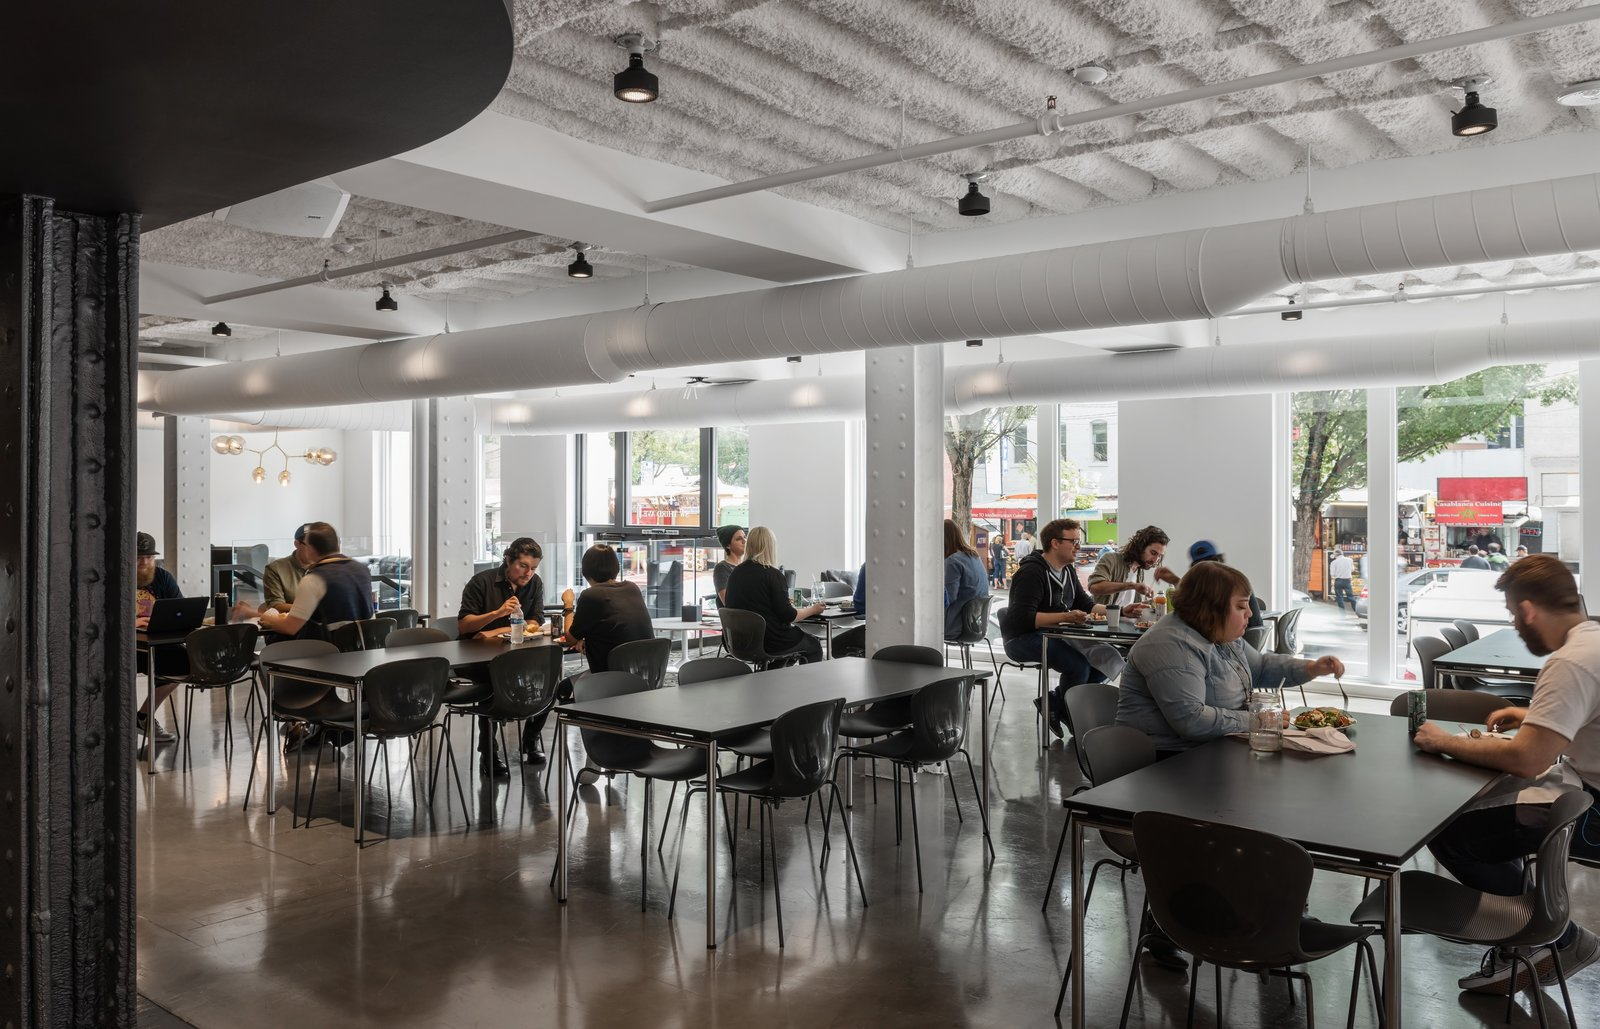 Employees eat at tables in a large entry space with plenty of windows and natural light. Step Inside Squarespace's Minimalist Portland Office - Photo 9 of 12